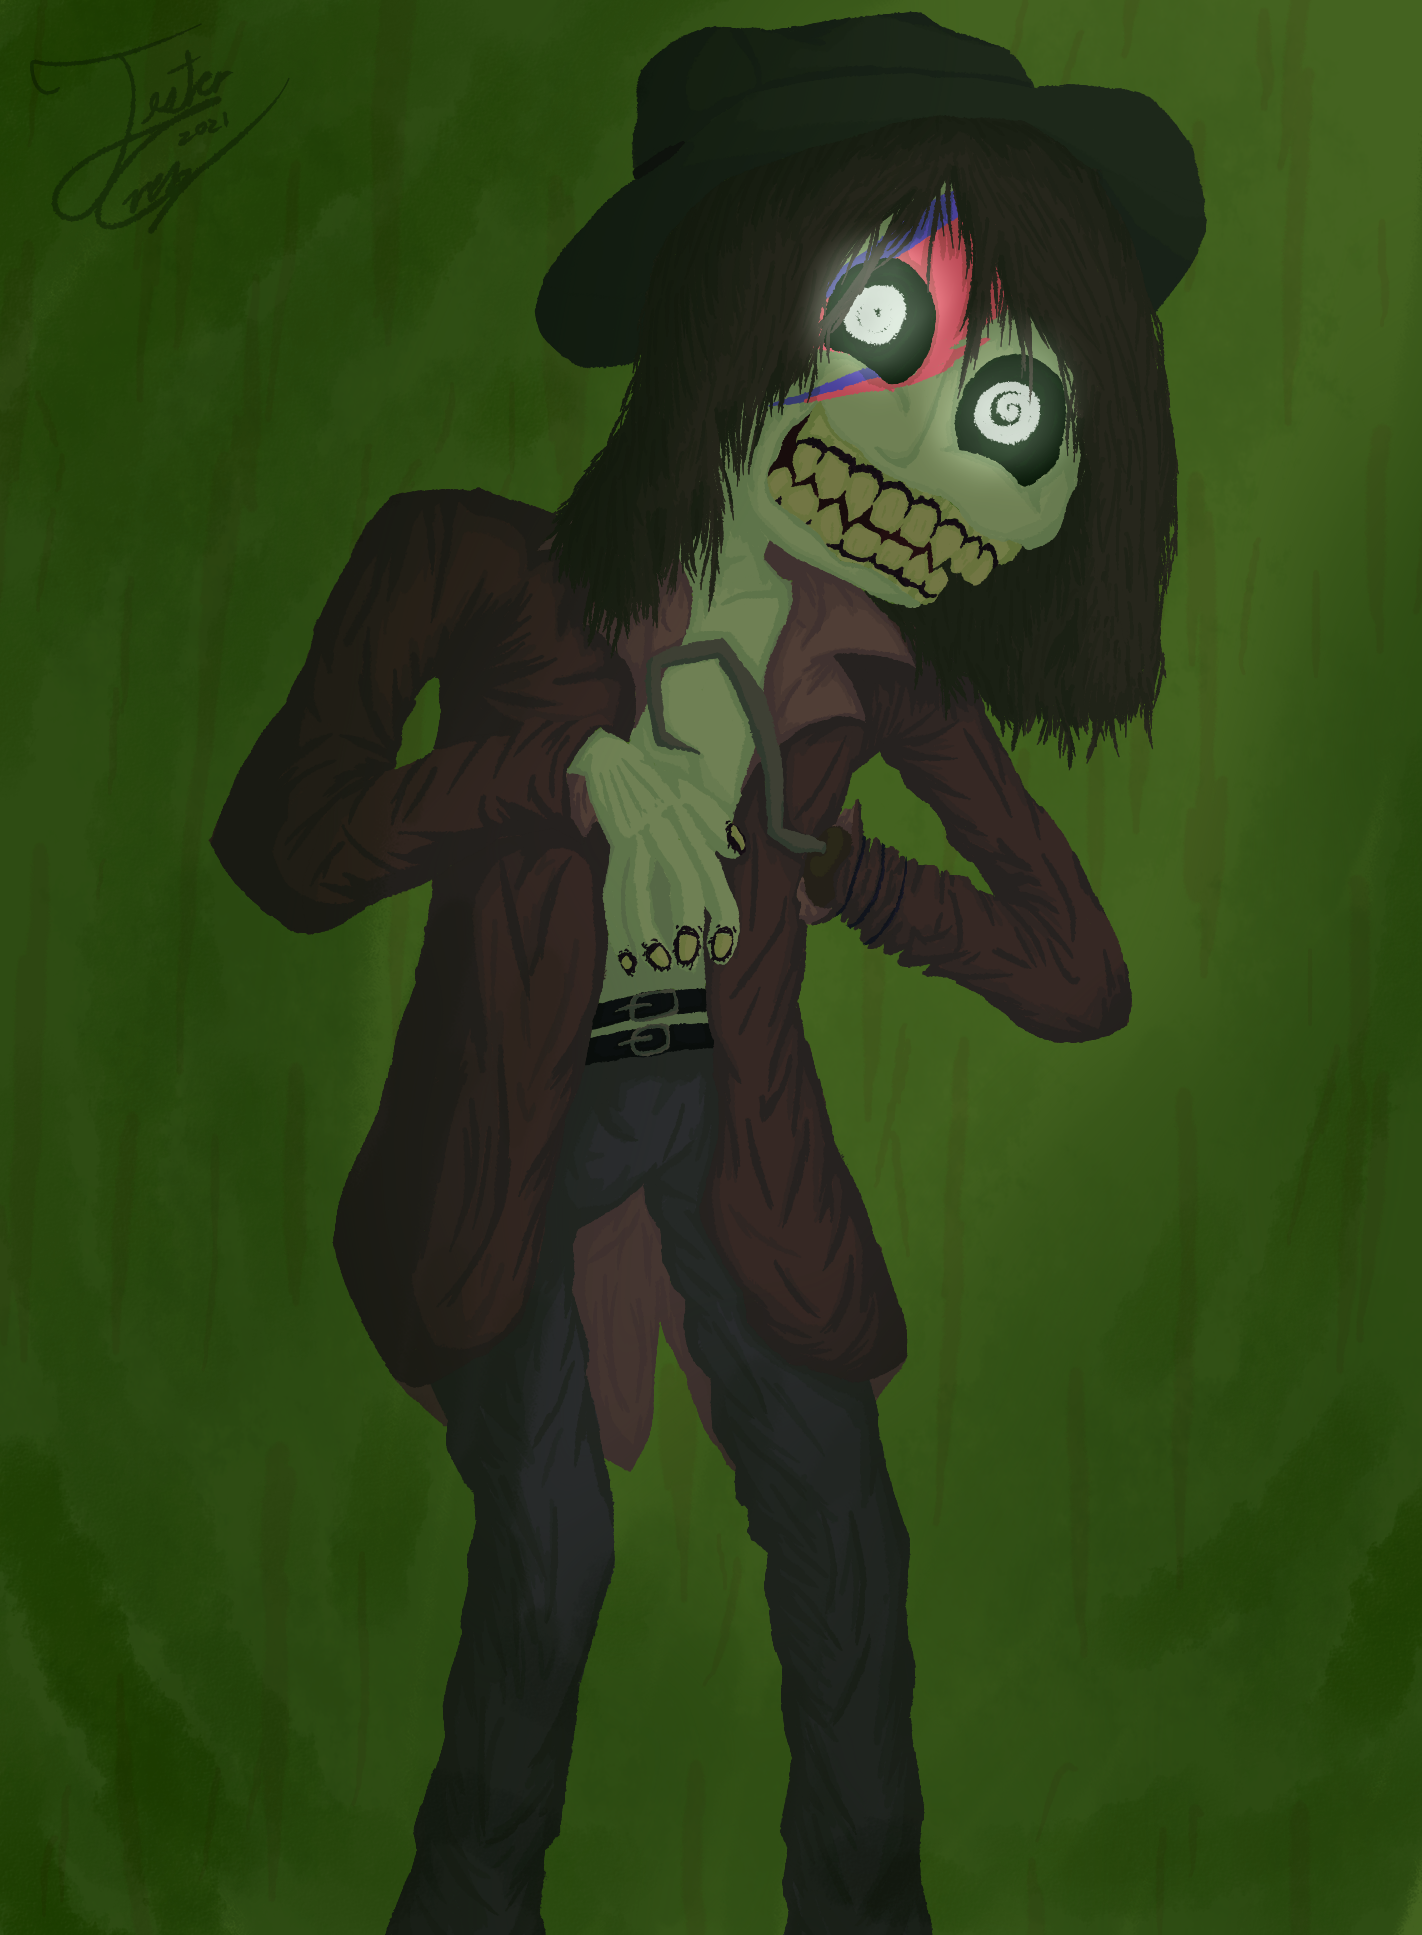 Zombie Cowboy from the space!!